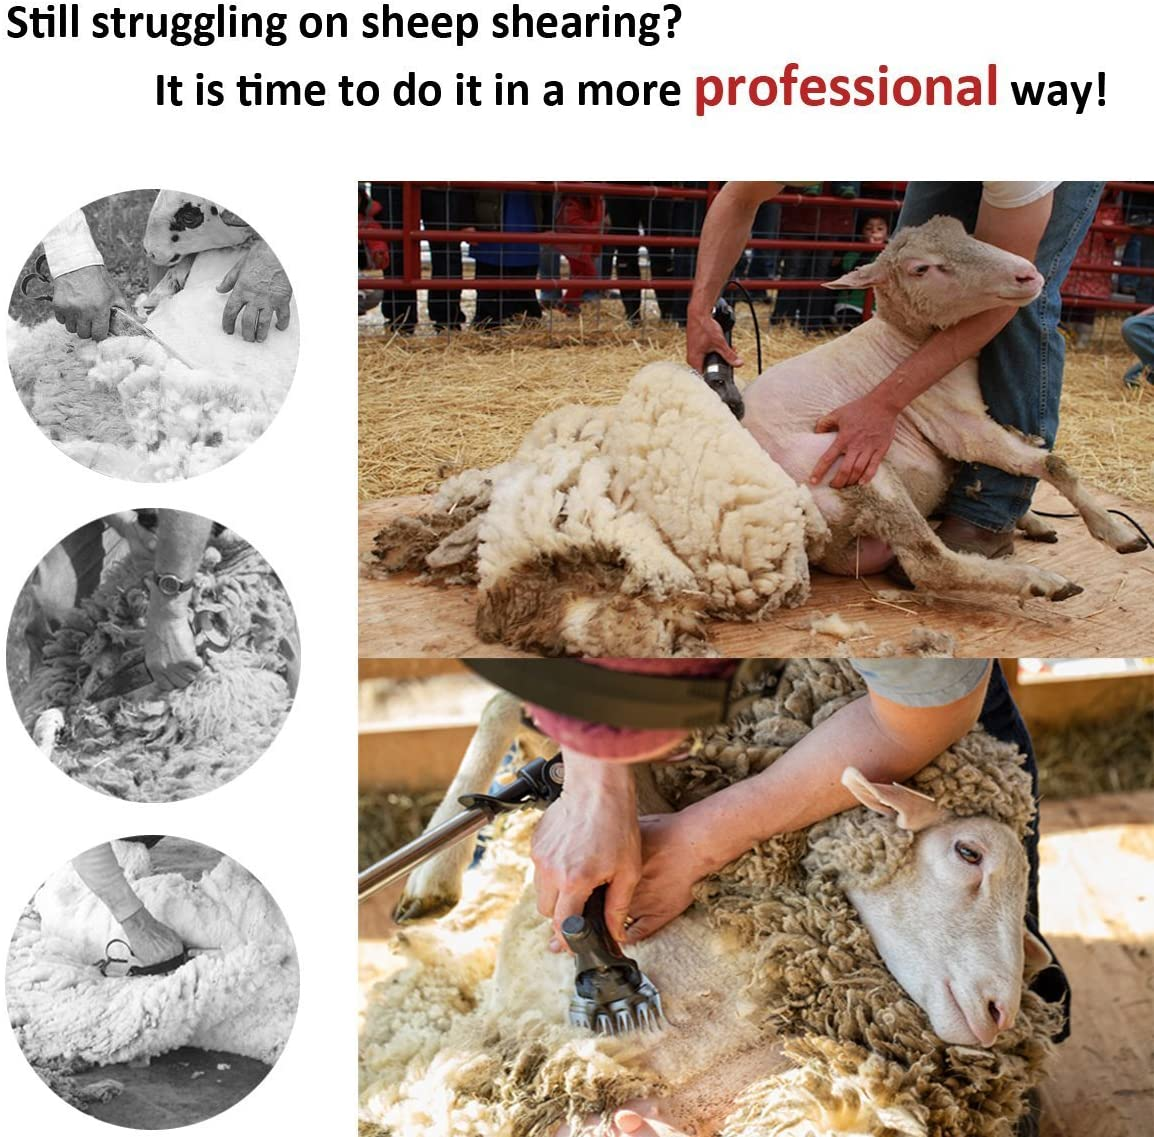 Livestock Shears /& Livestock Grooming Supplies UK Plug 690W 6 Speed For Farm Goats Orange Vinteky Electric Animal Grooming Clippers /& Sheep Shears Heavy Duty Large Animal Clippers